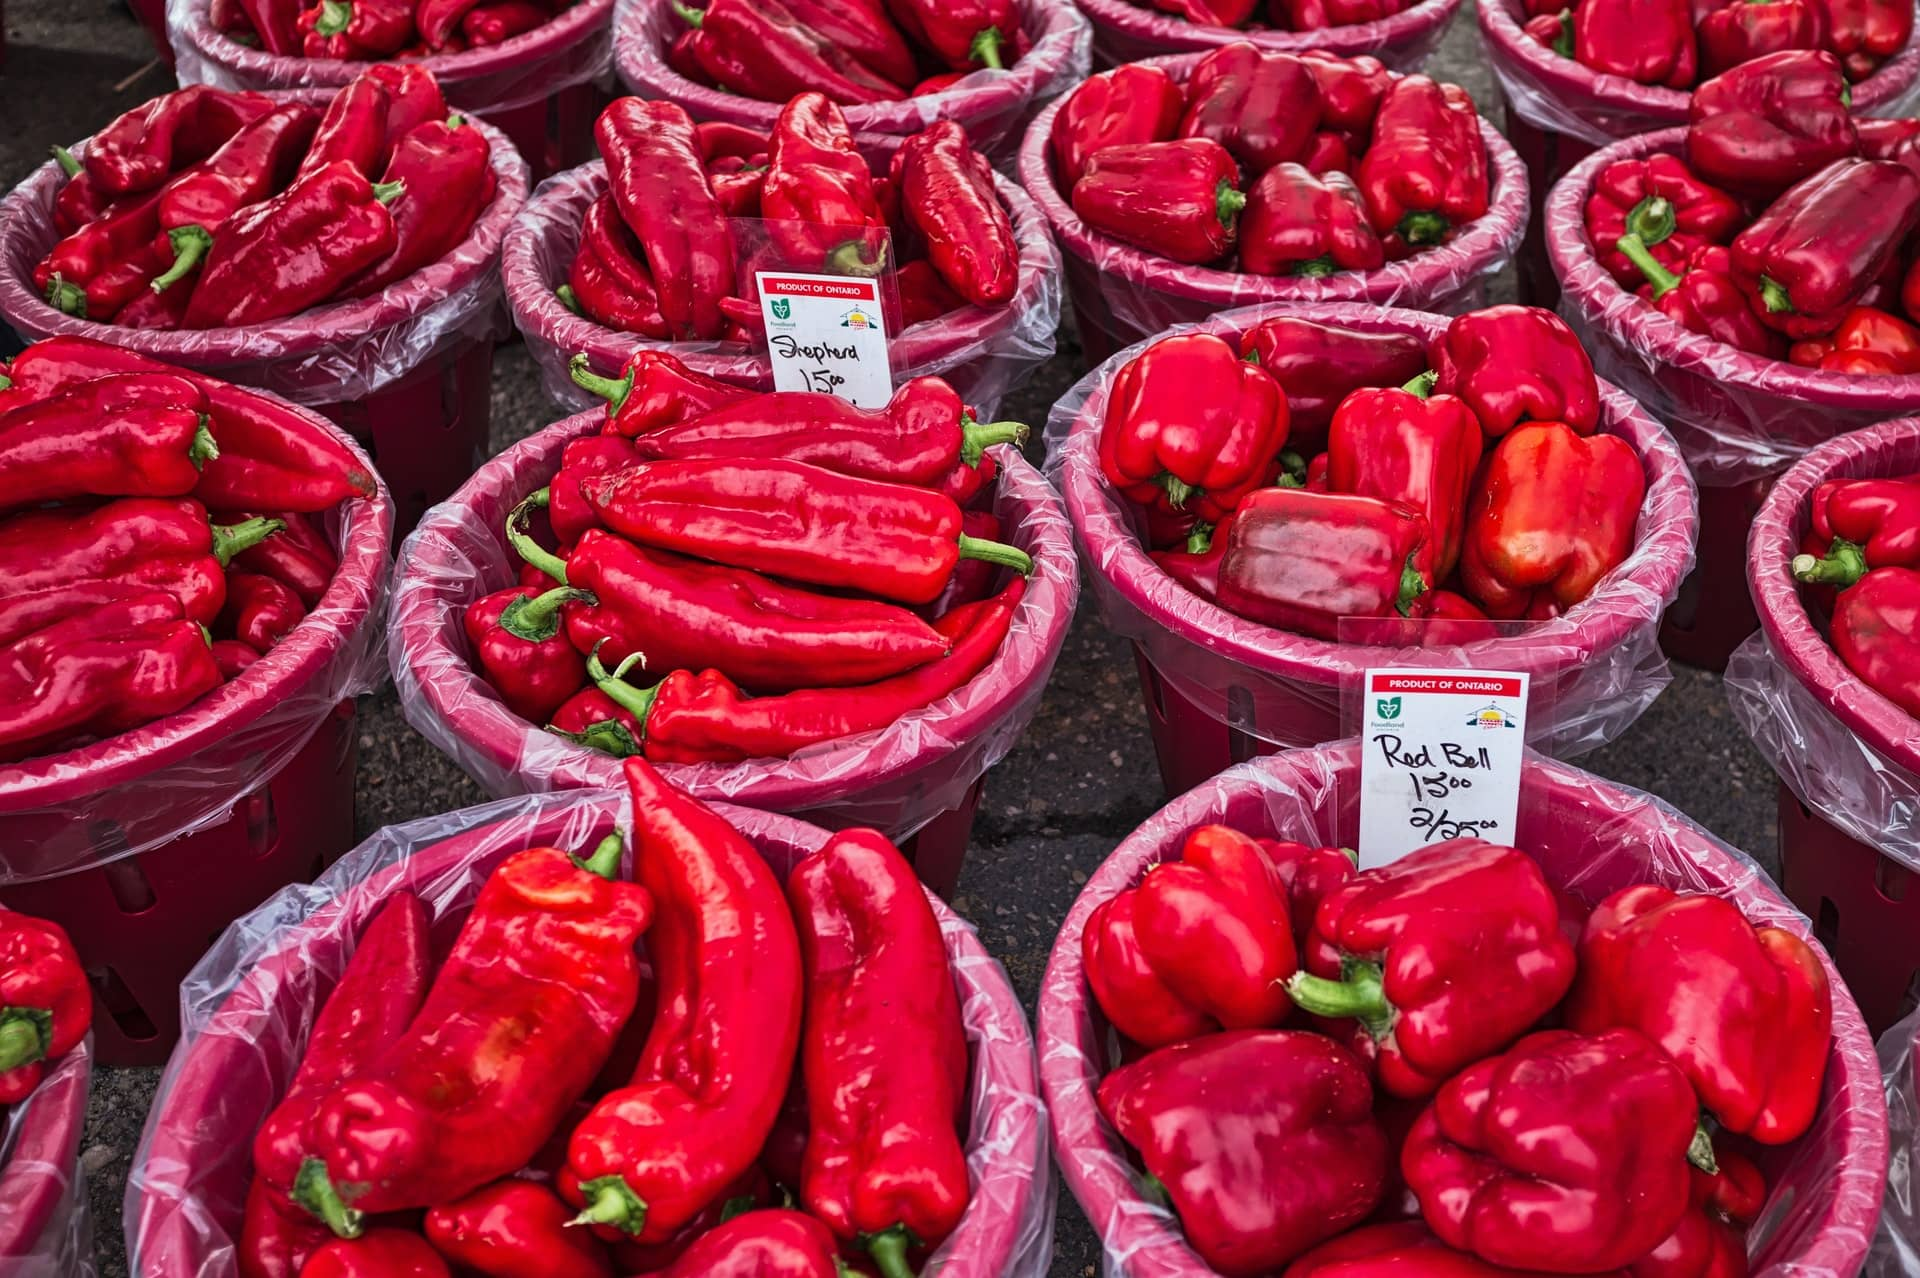 Red peppers at a market